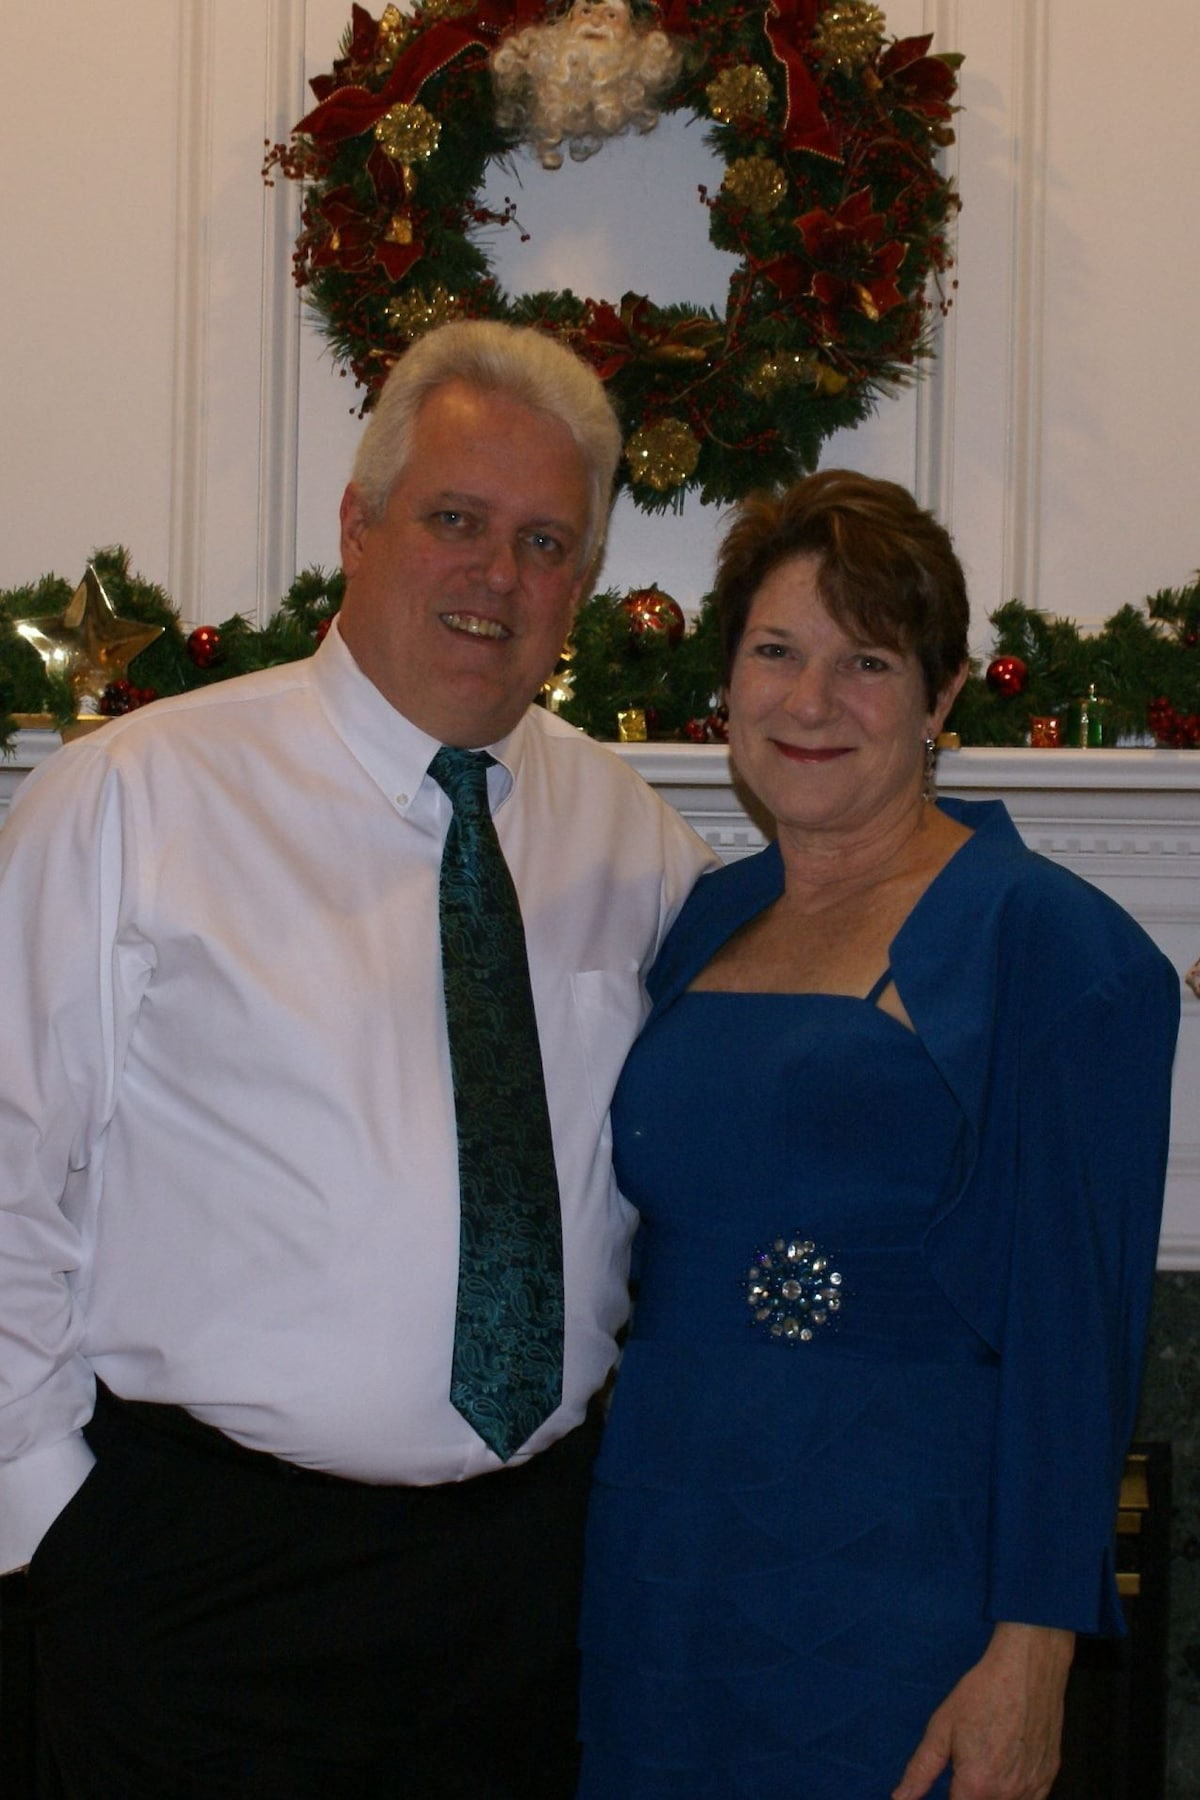 Mike & Cindy From Raleigh, NC